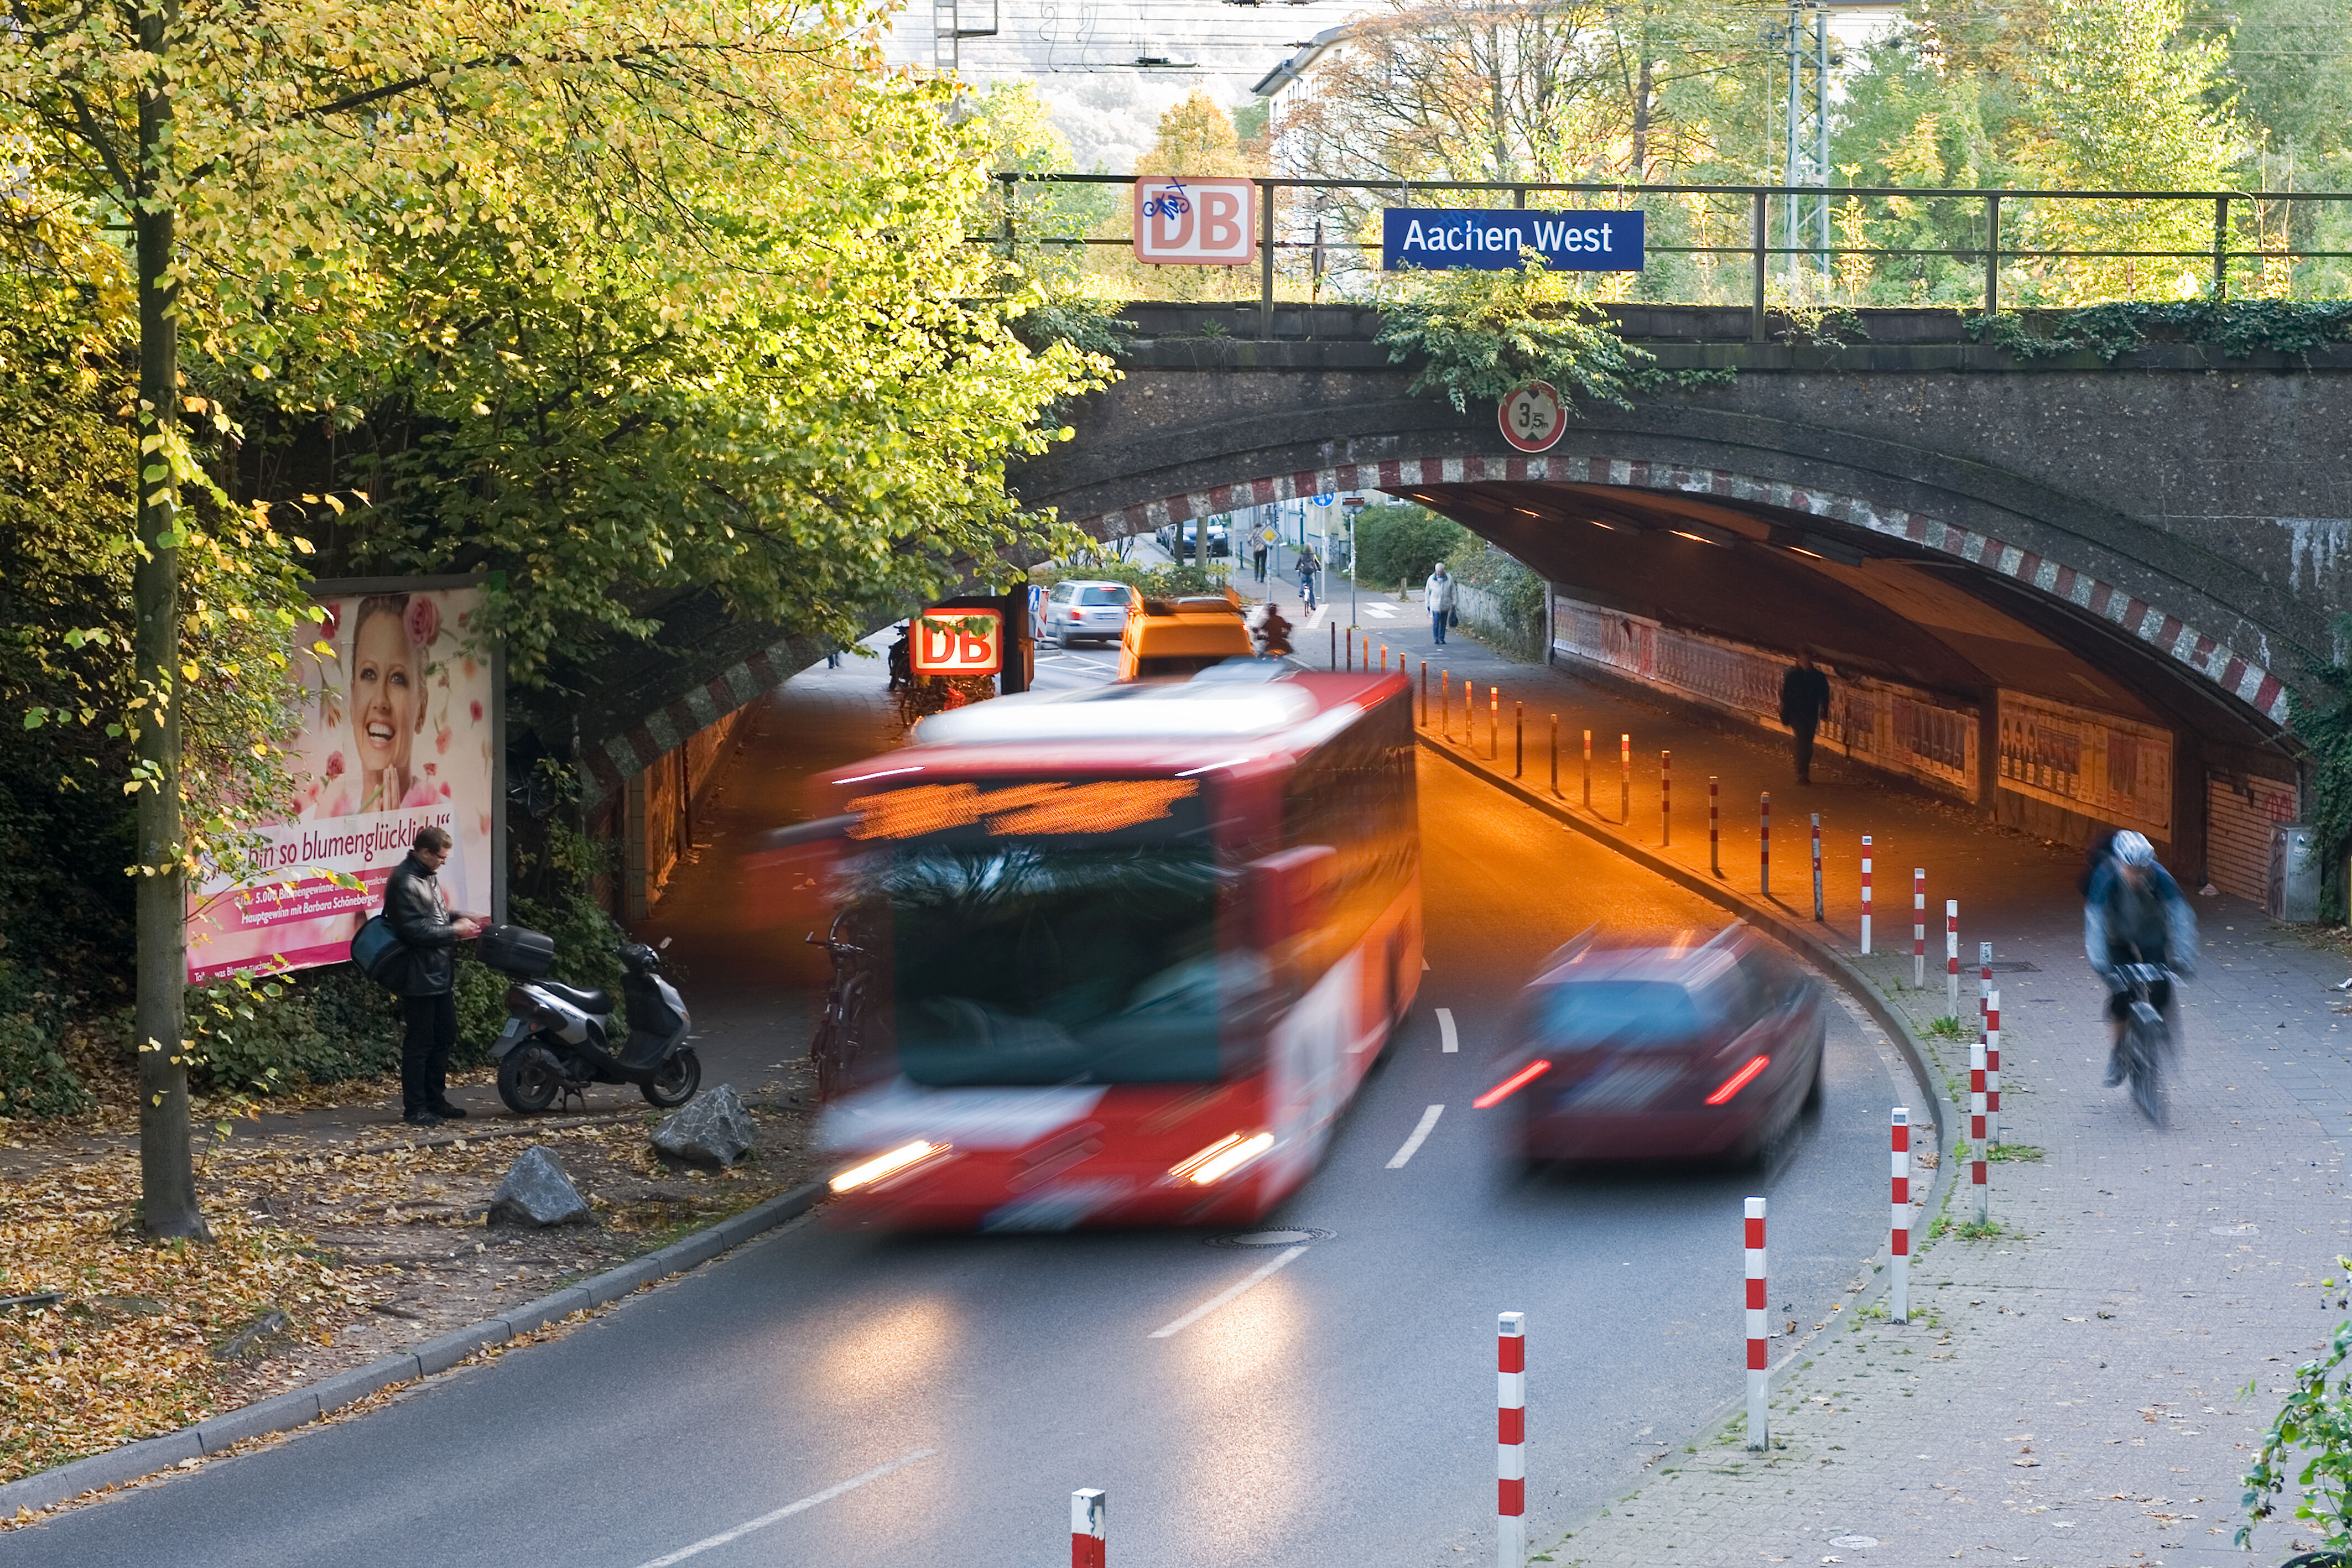 A bus crosses a through the railway bridge in Aachen West in the evening sun.